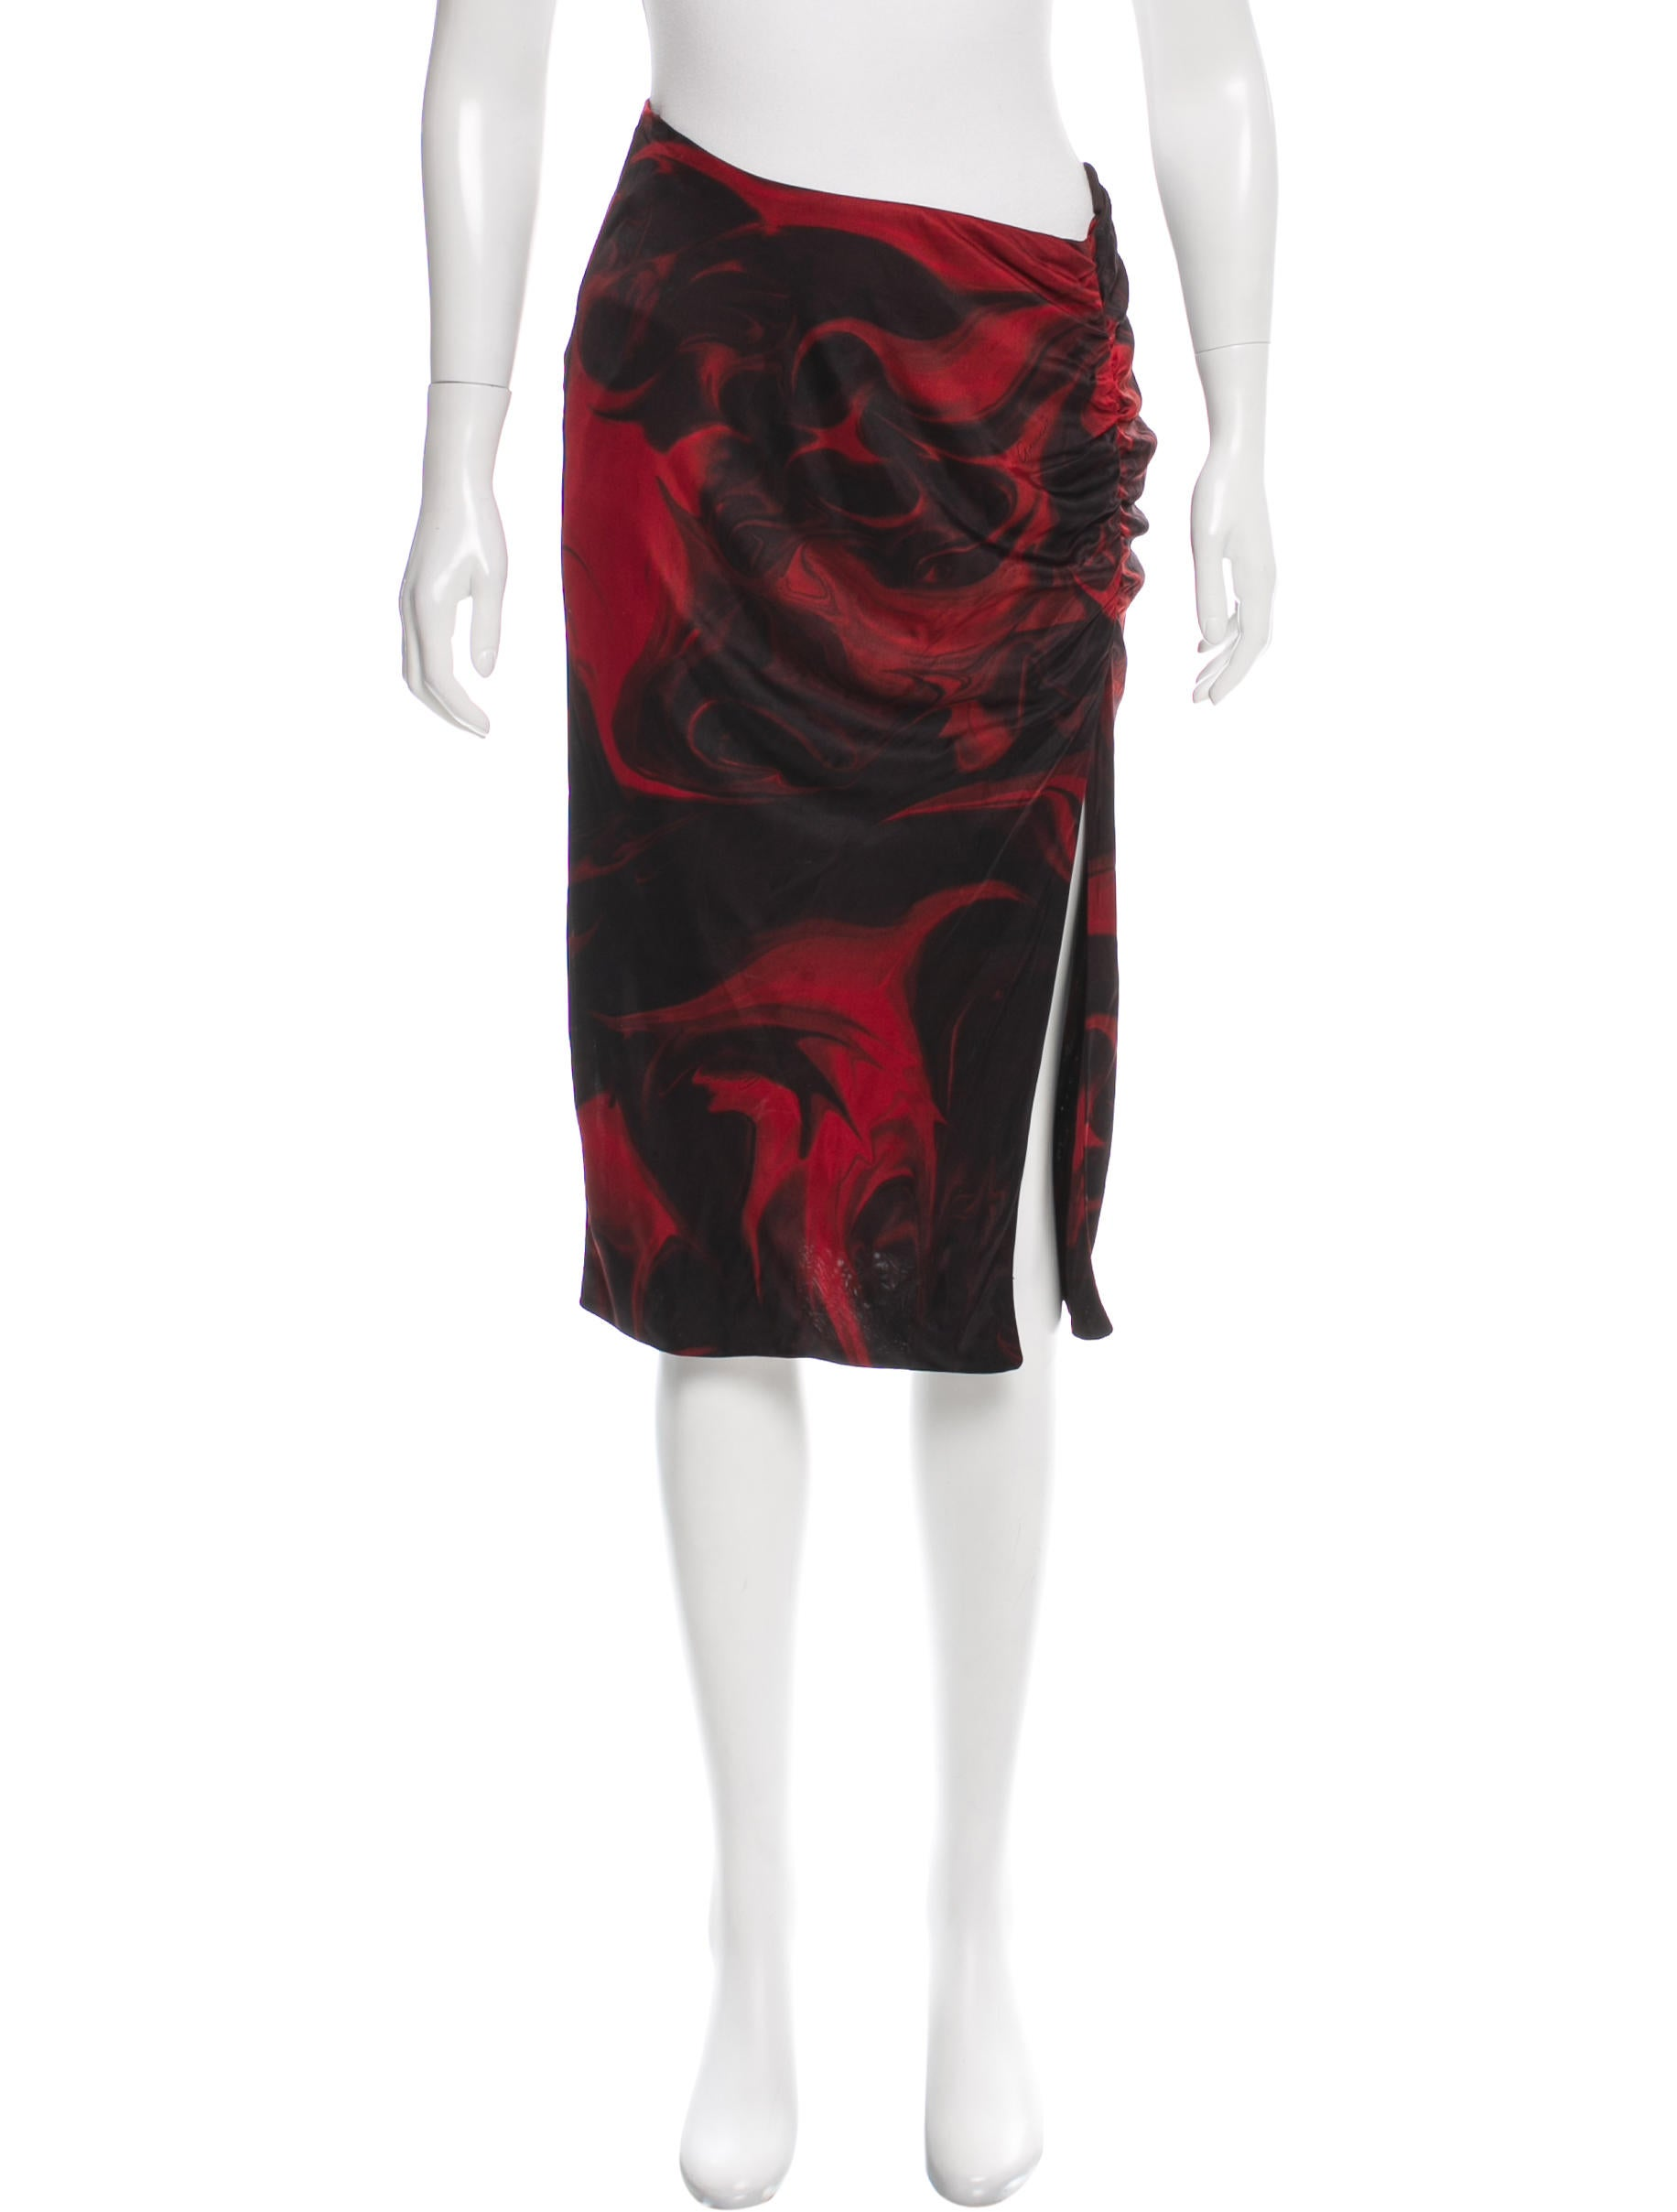 Gucci Printed Knee-Length Skirt - Clothing - GUC135013 | The RealReal